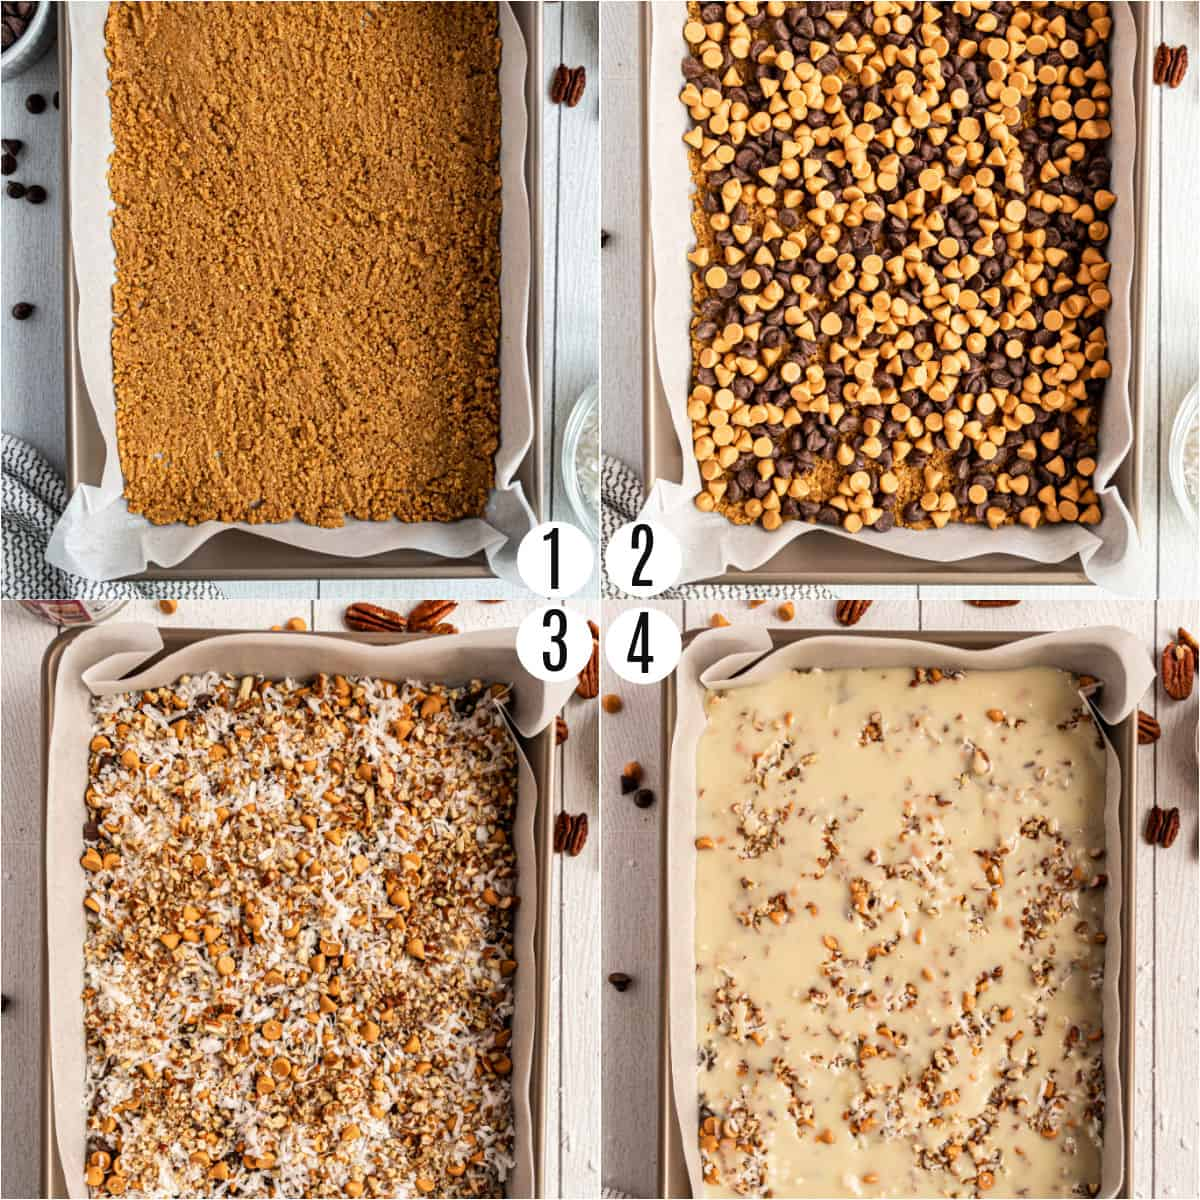 Step by step photos showing how to make 7 layer bars.